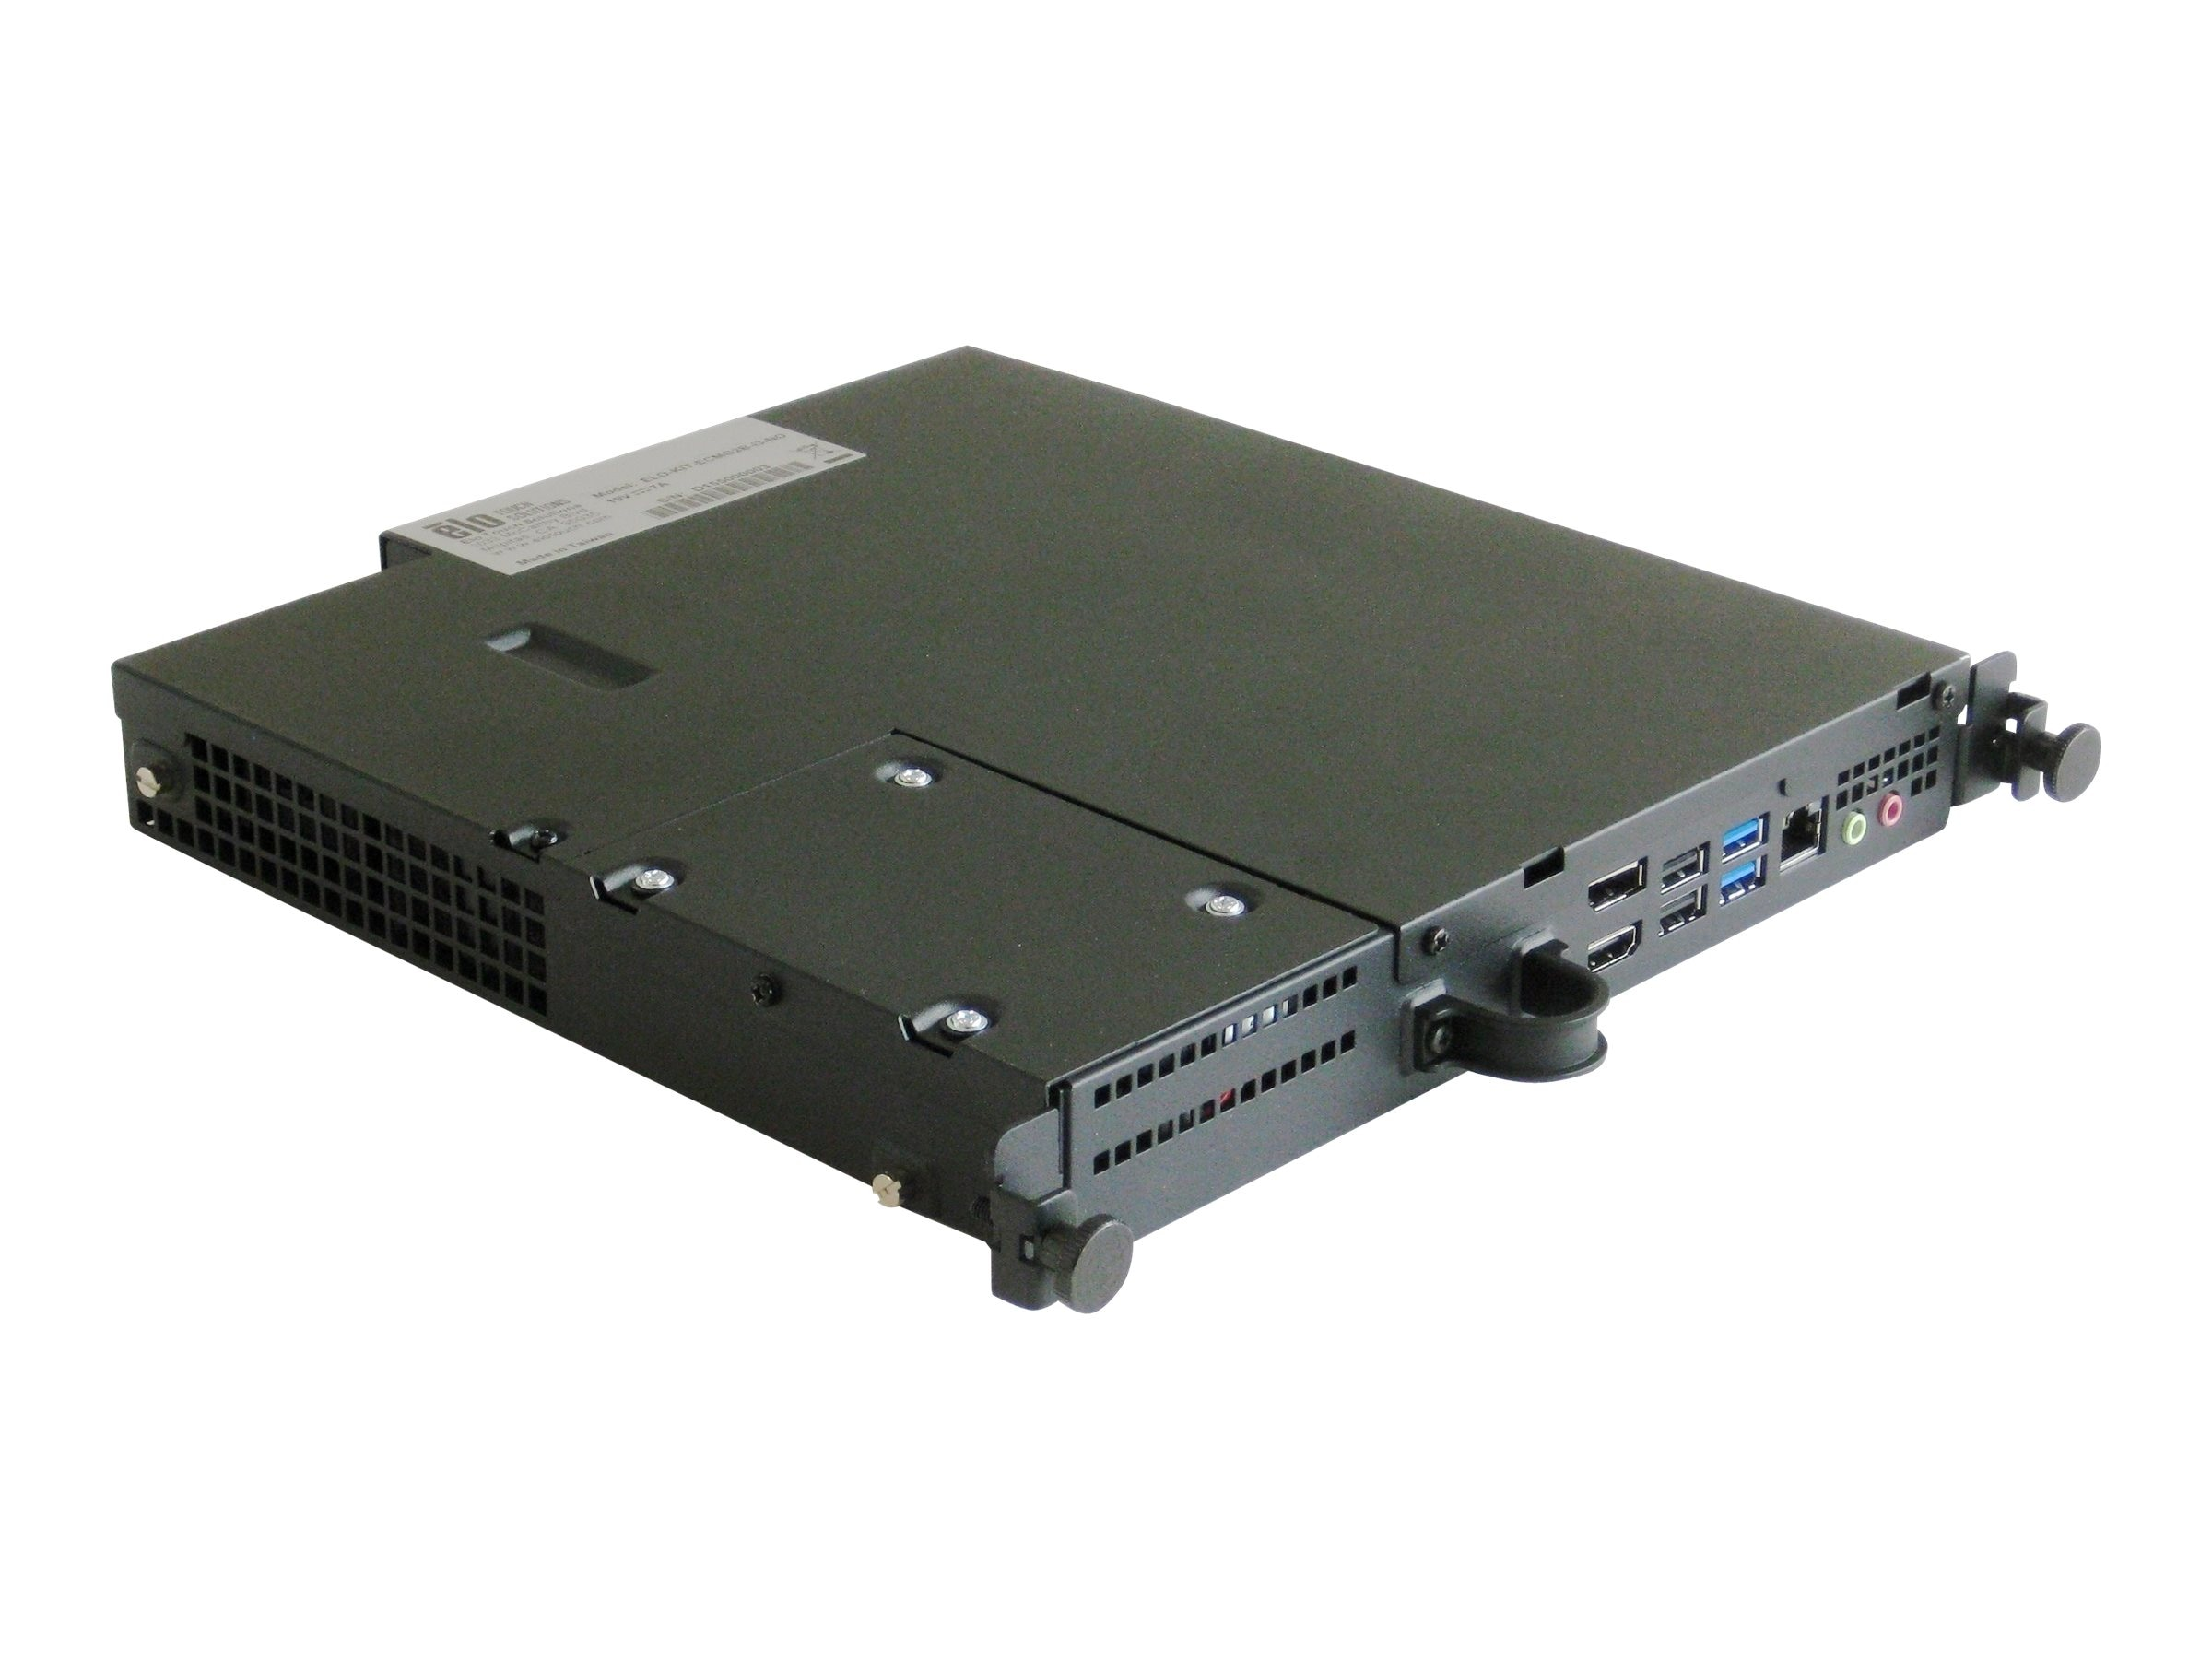 ELO Touch Solutions i3 3.40GHz ECMG2B Module with Windows 7, E001293, 30786690, Digital Signage Systems & Modules